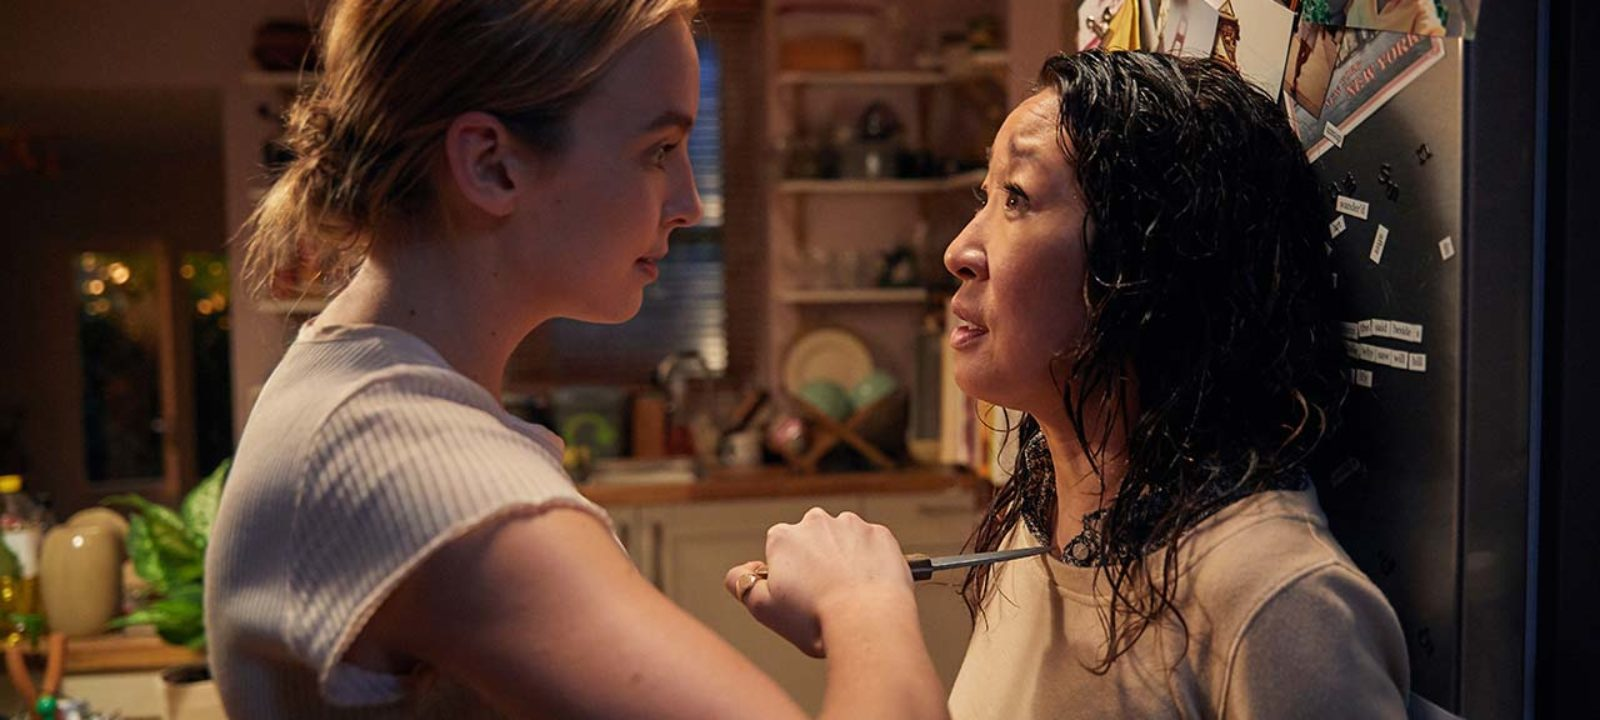 killing-eve-first-look-3